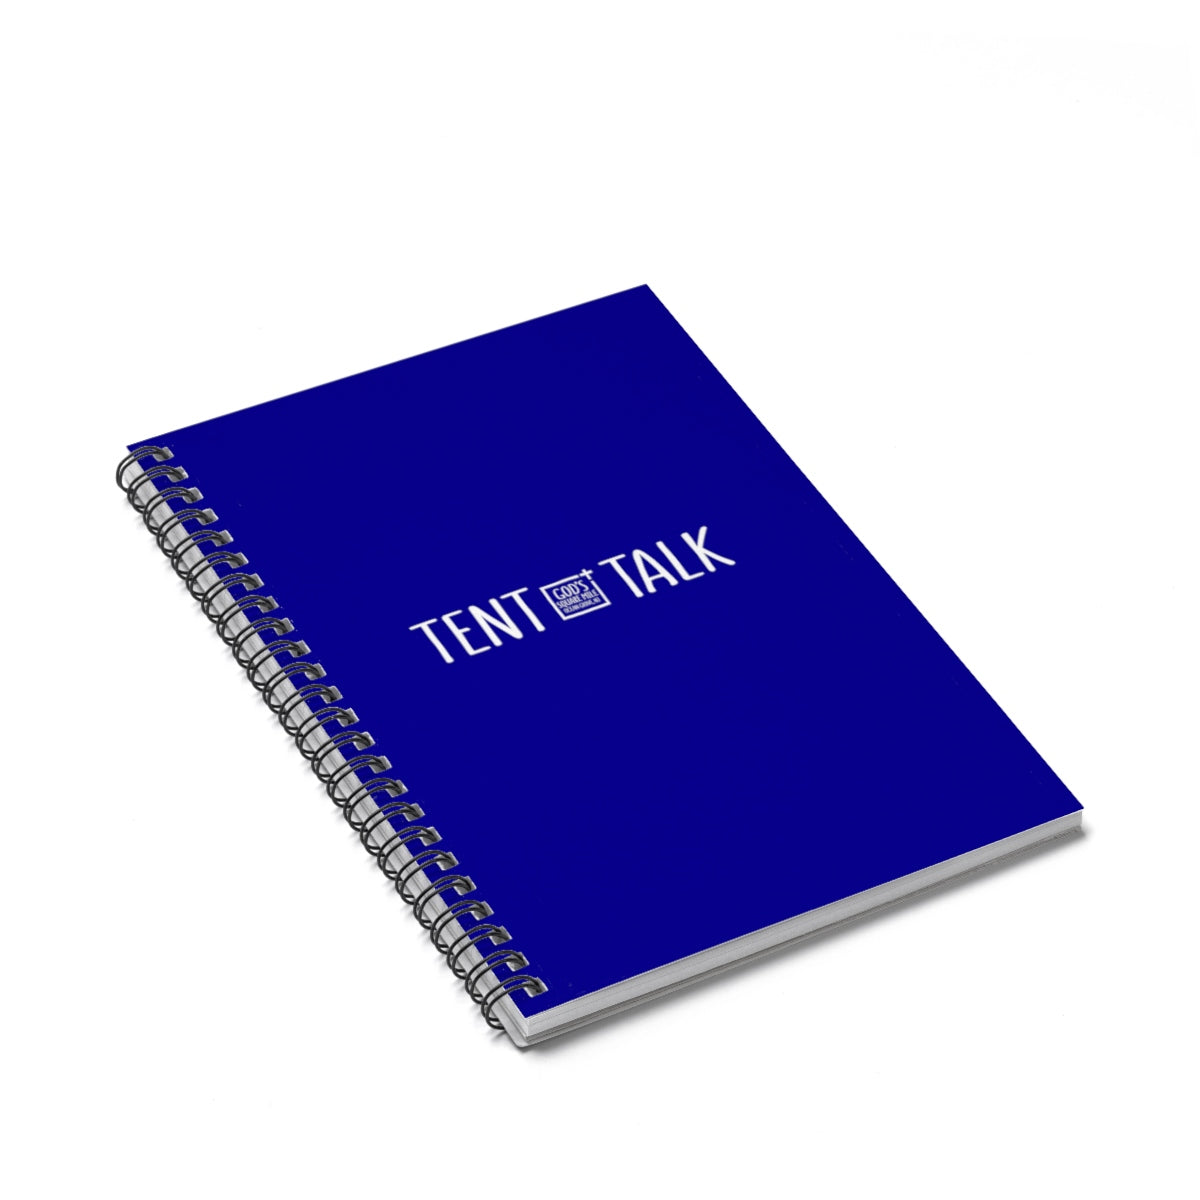 Tent Talk Spiral Notebook - Blue